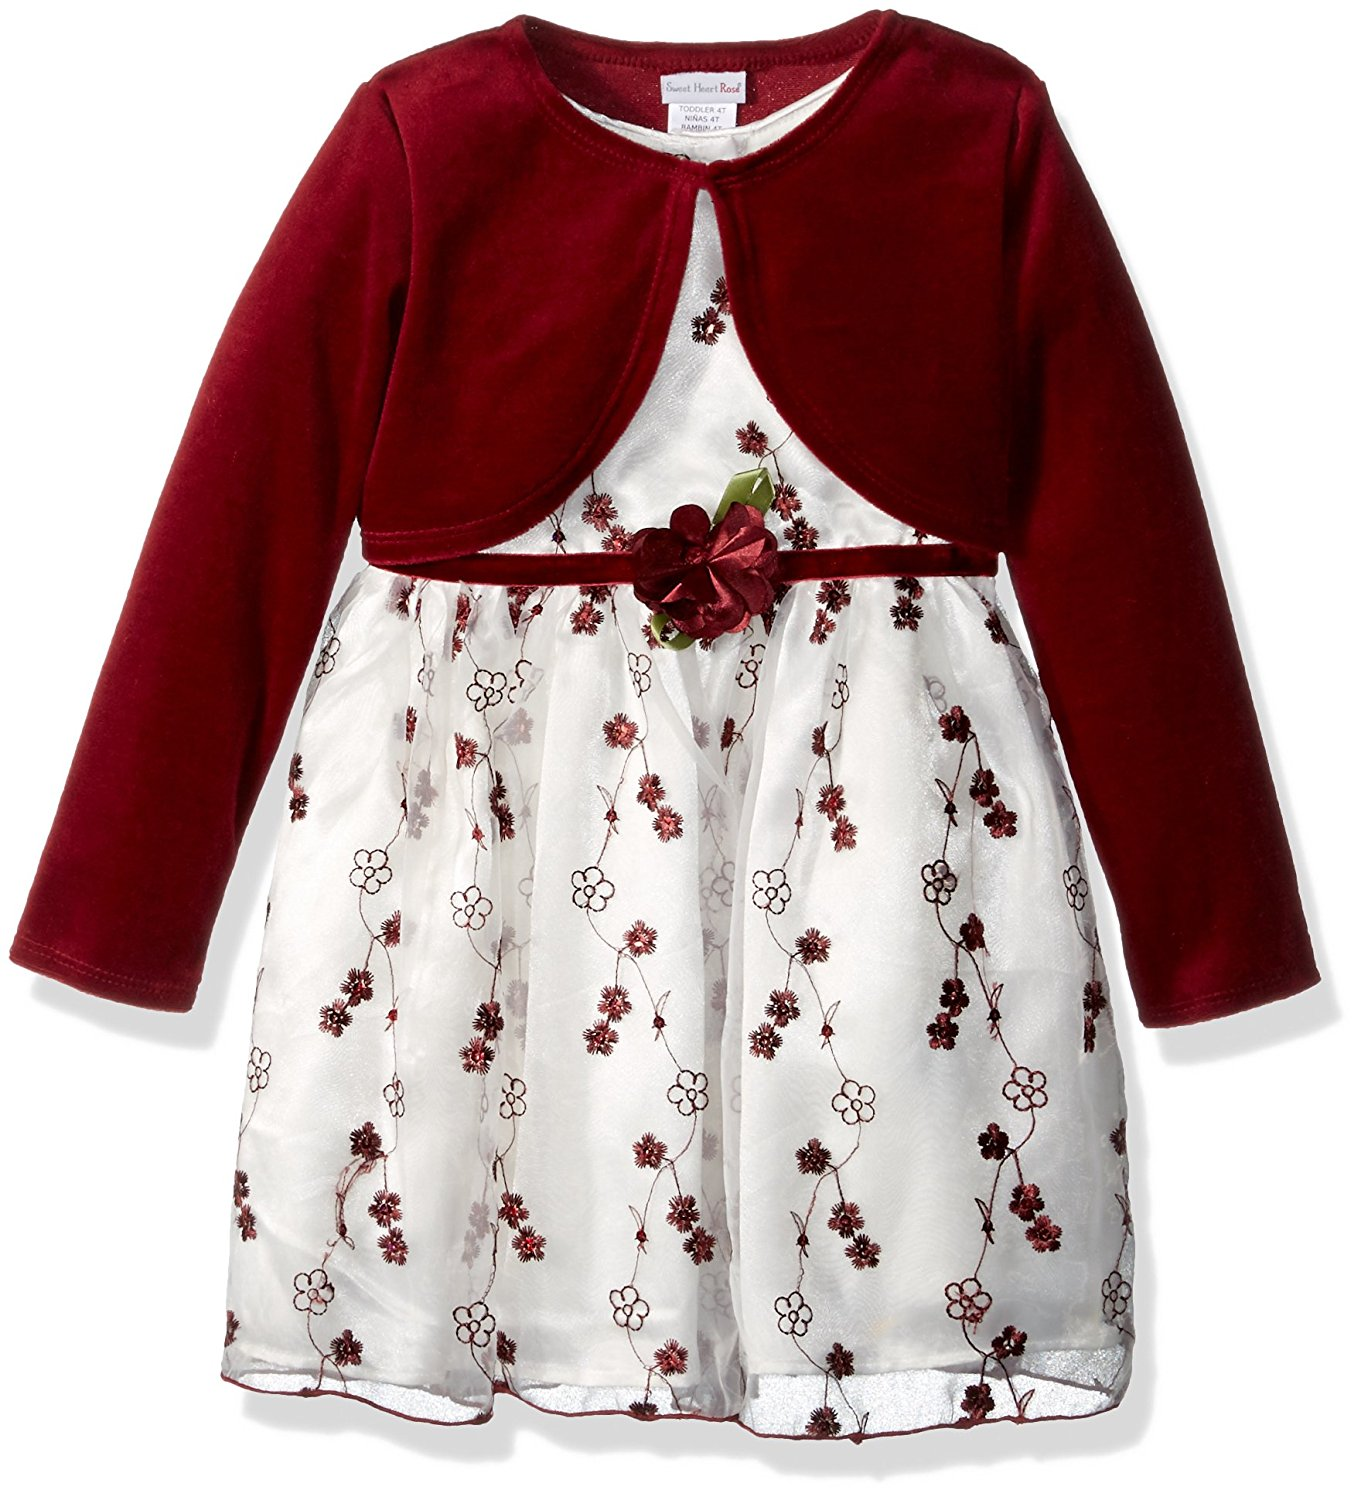 0a16cbaf6ba Get Quotations · Sweet Heart Rose Toddler Girls  2 Pc Embroidered Organza  Dress With Knit Cardigan